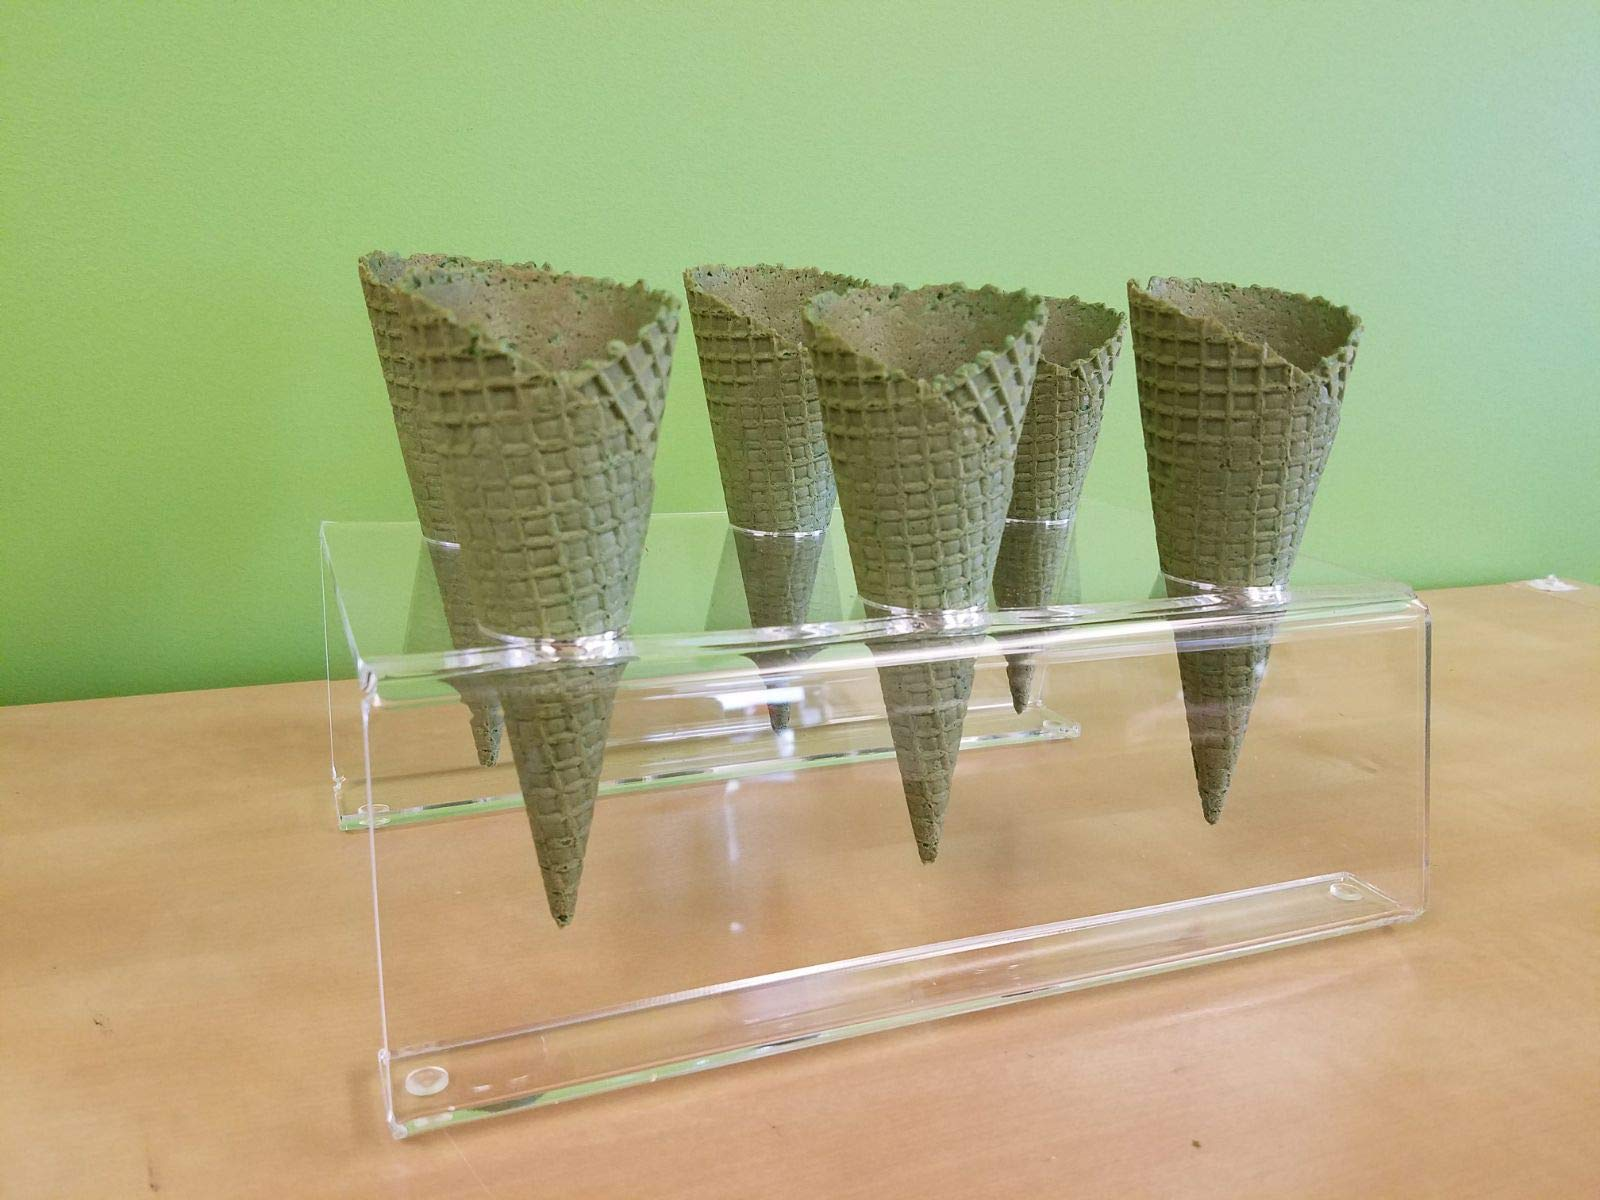 Cones (2.16'' X 5.5'') - 312 Units / Case (MATCHA GREEN TEAM) by Altimate Foods (Image #3)